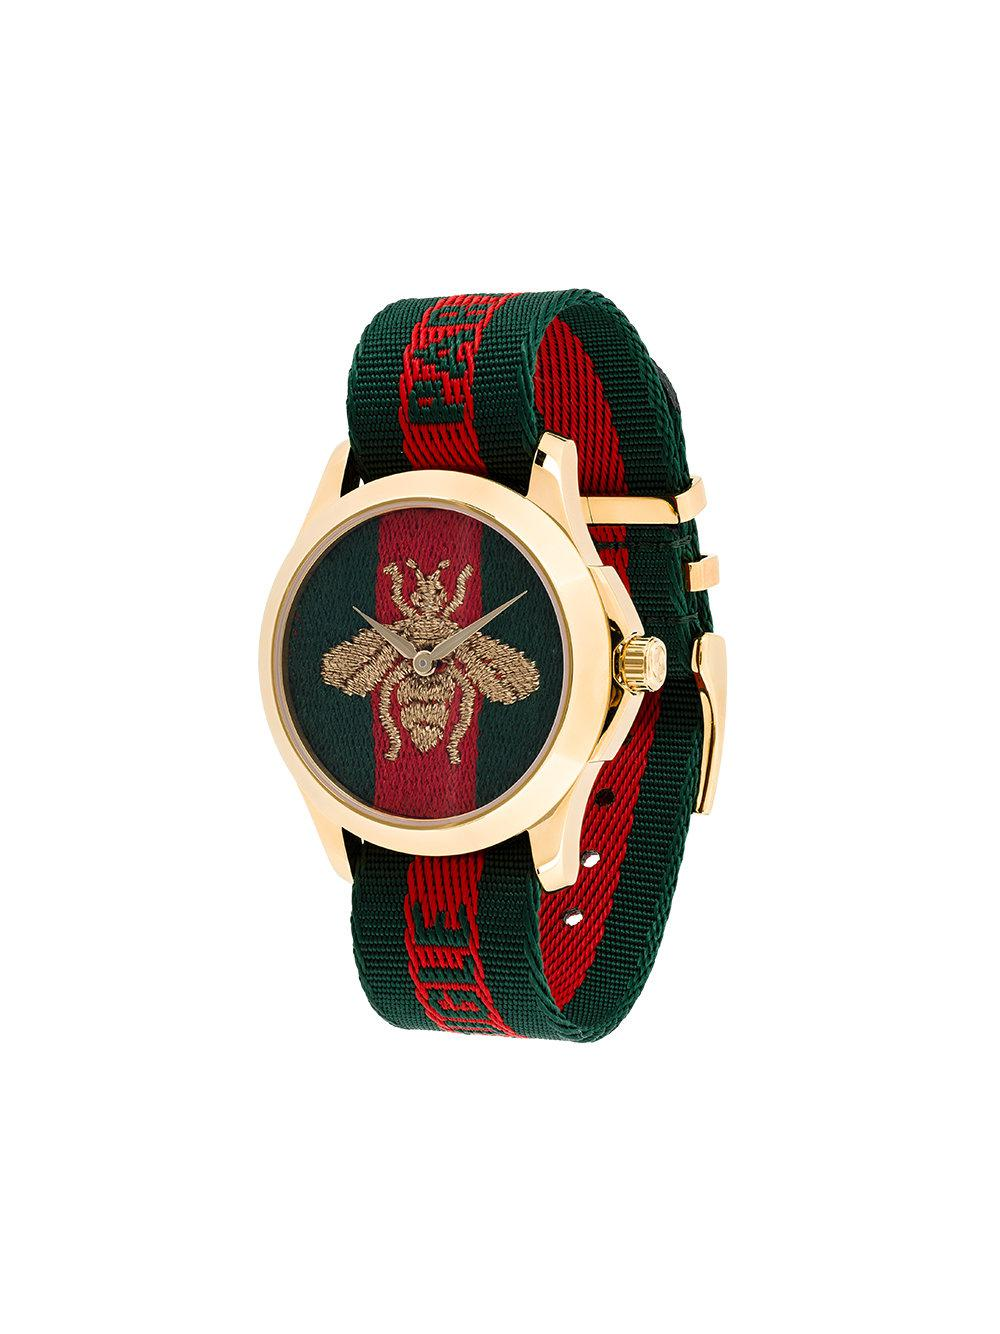 30e9f2296d5 Lyst - Gucci Watch With Bee Clock Face in Green